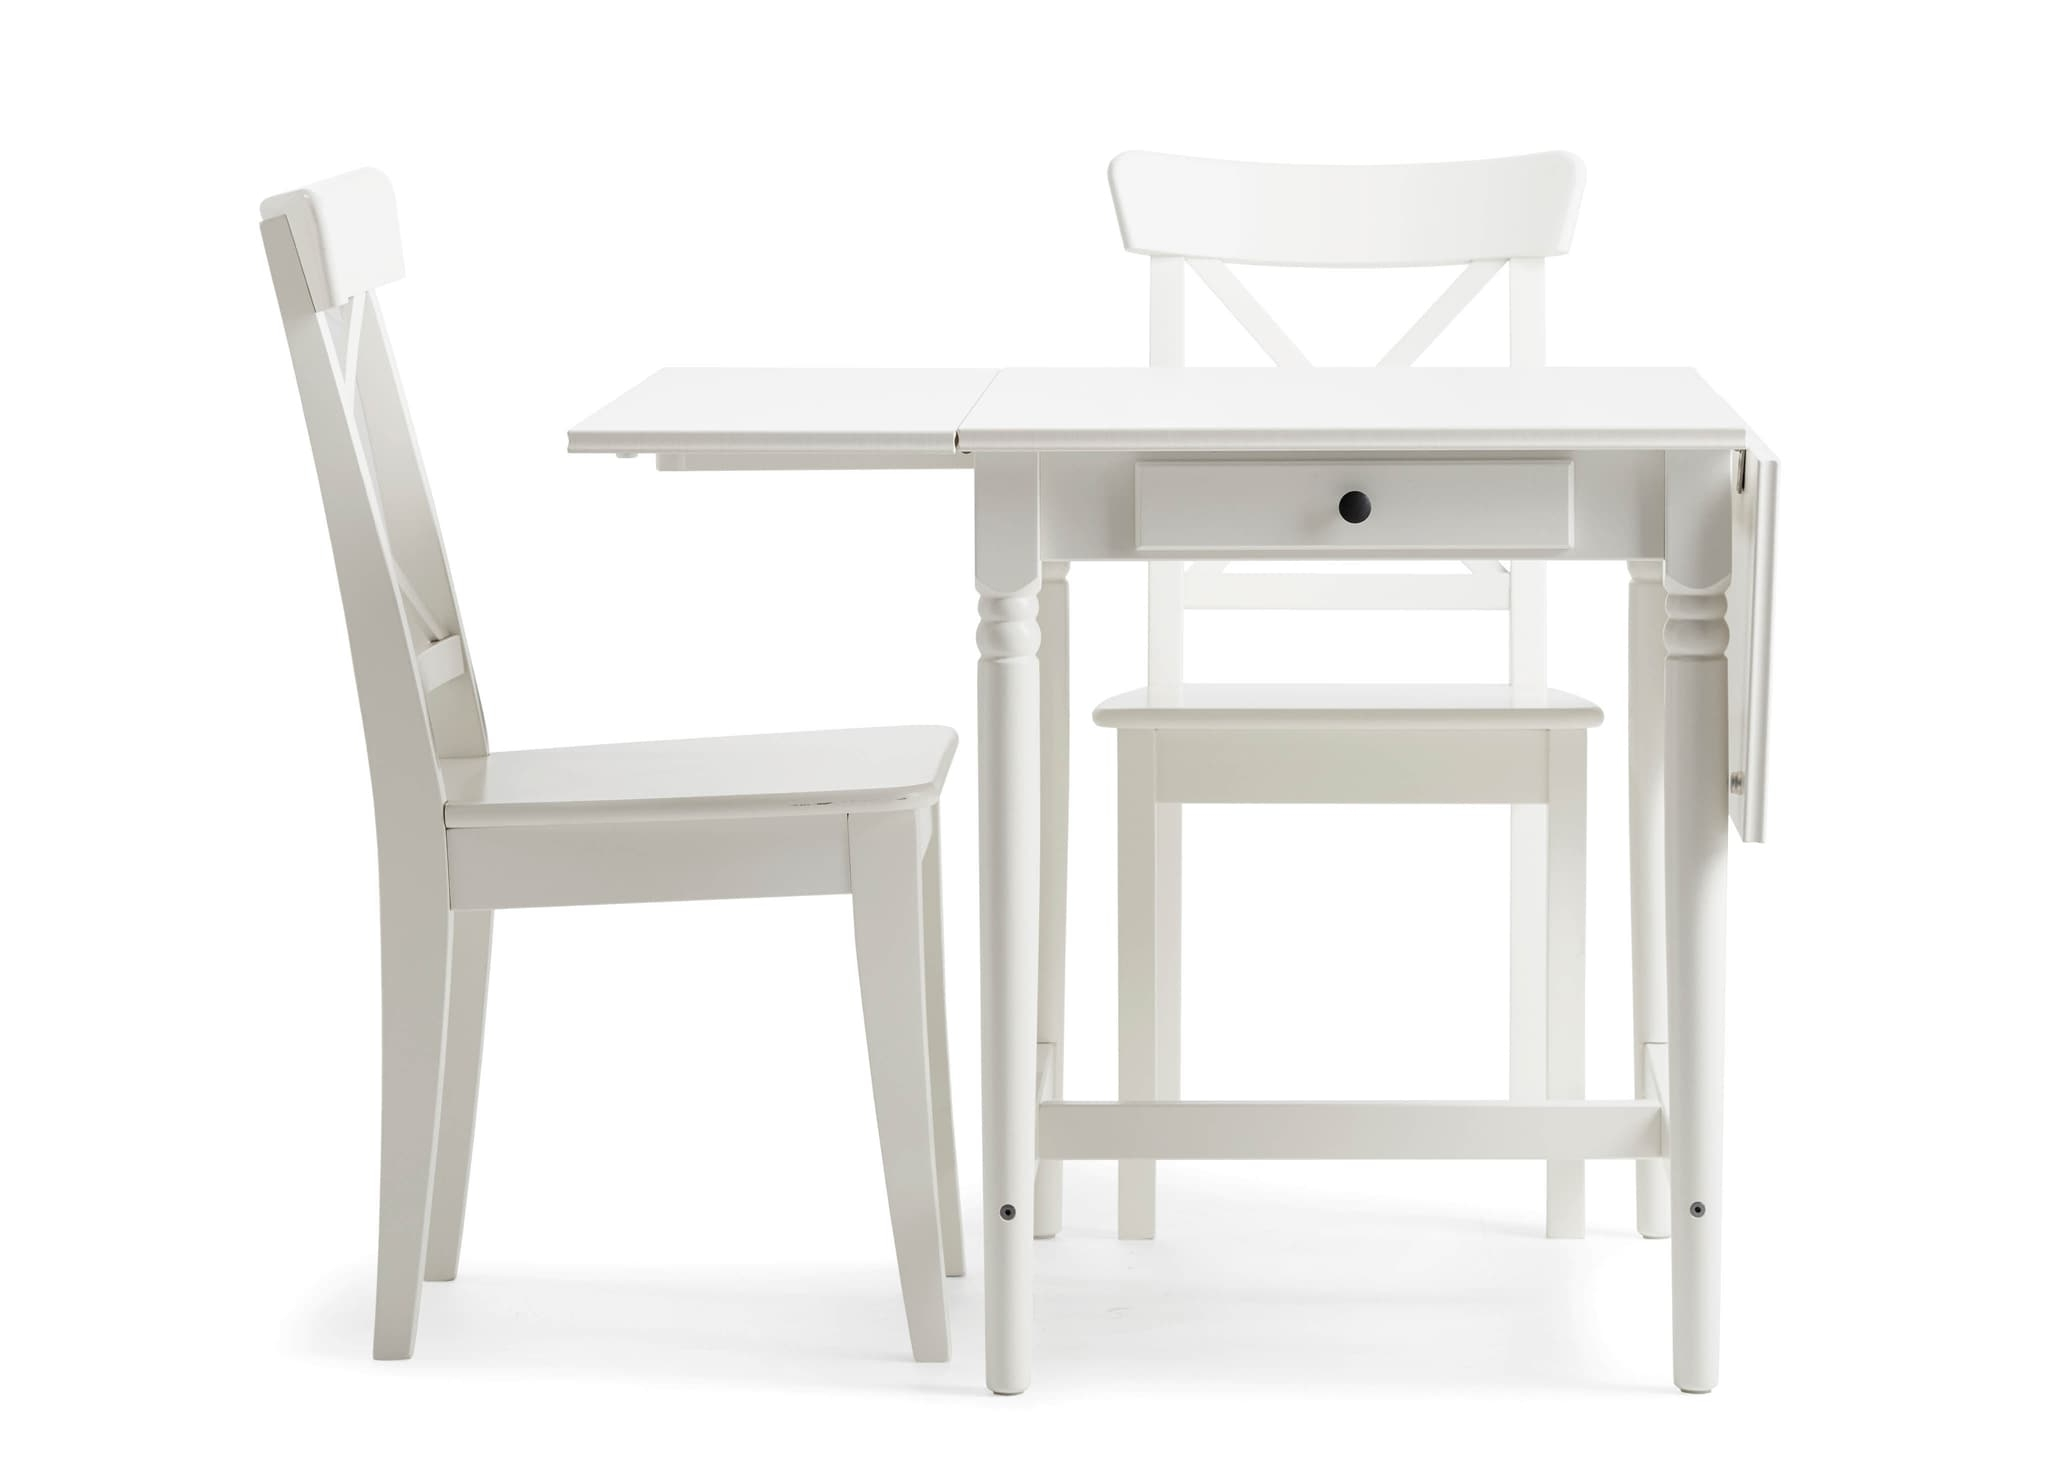 Ikea Intended For Small Dining Tables And Chairs (View 10 of 25)